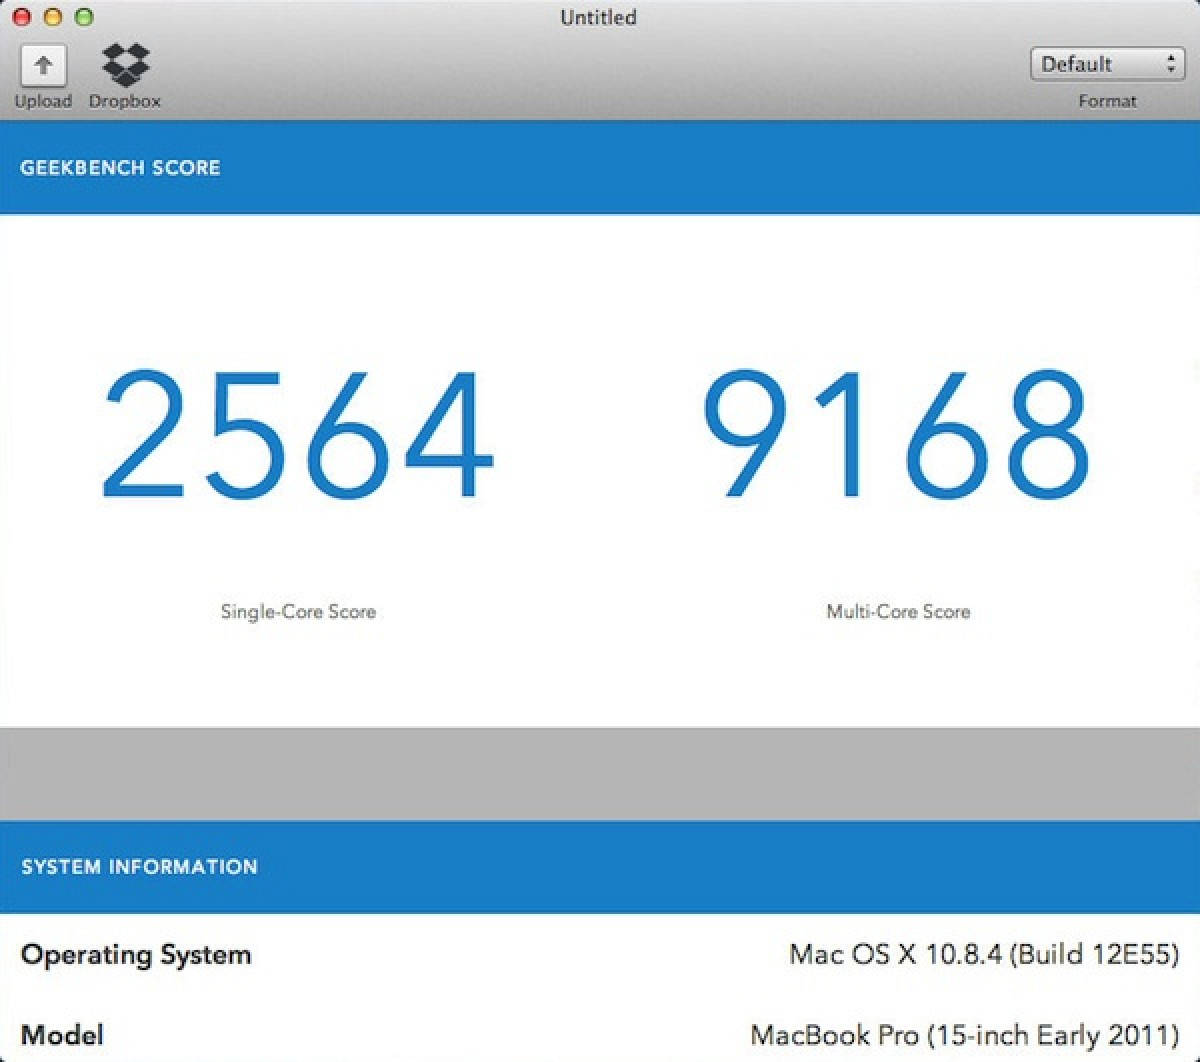 Post Macos Os X Geekbench Benchmarks: Geekbench 3 With 15 New Benchmark Tests Released For Mac